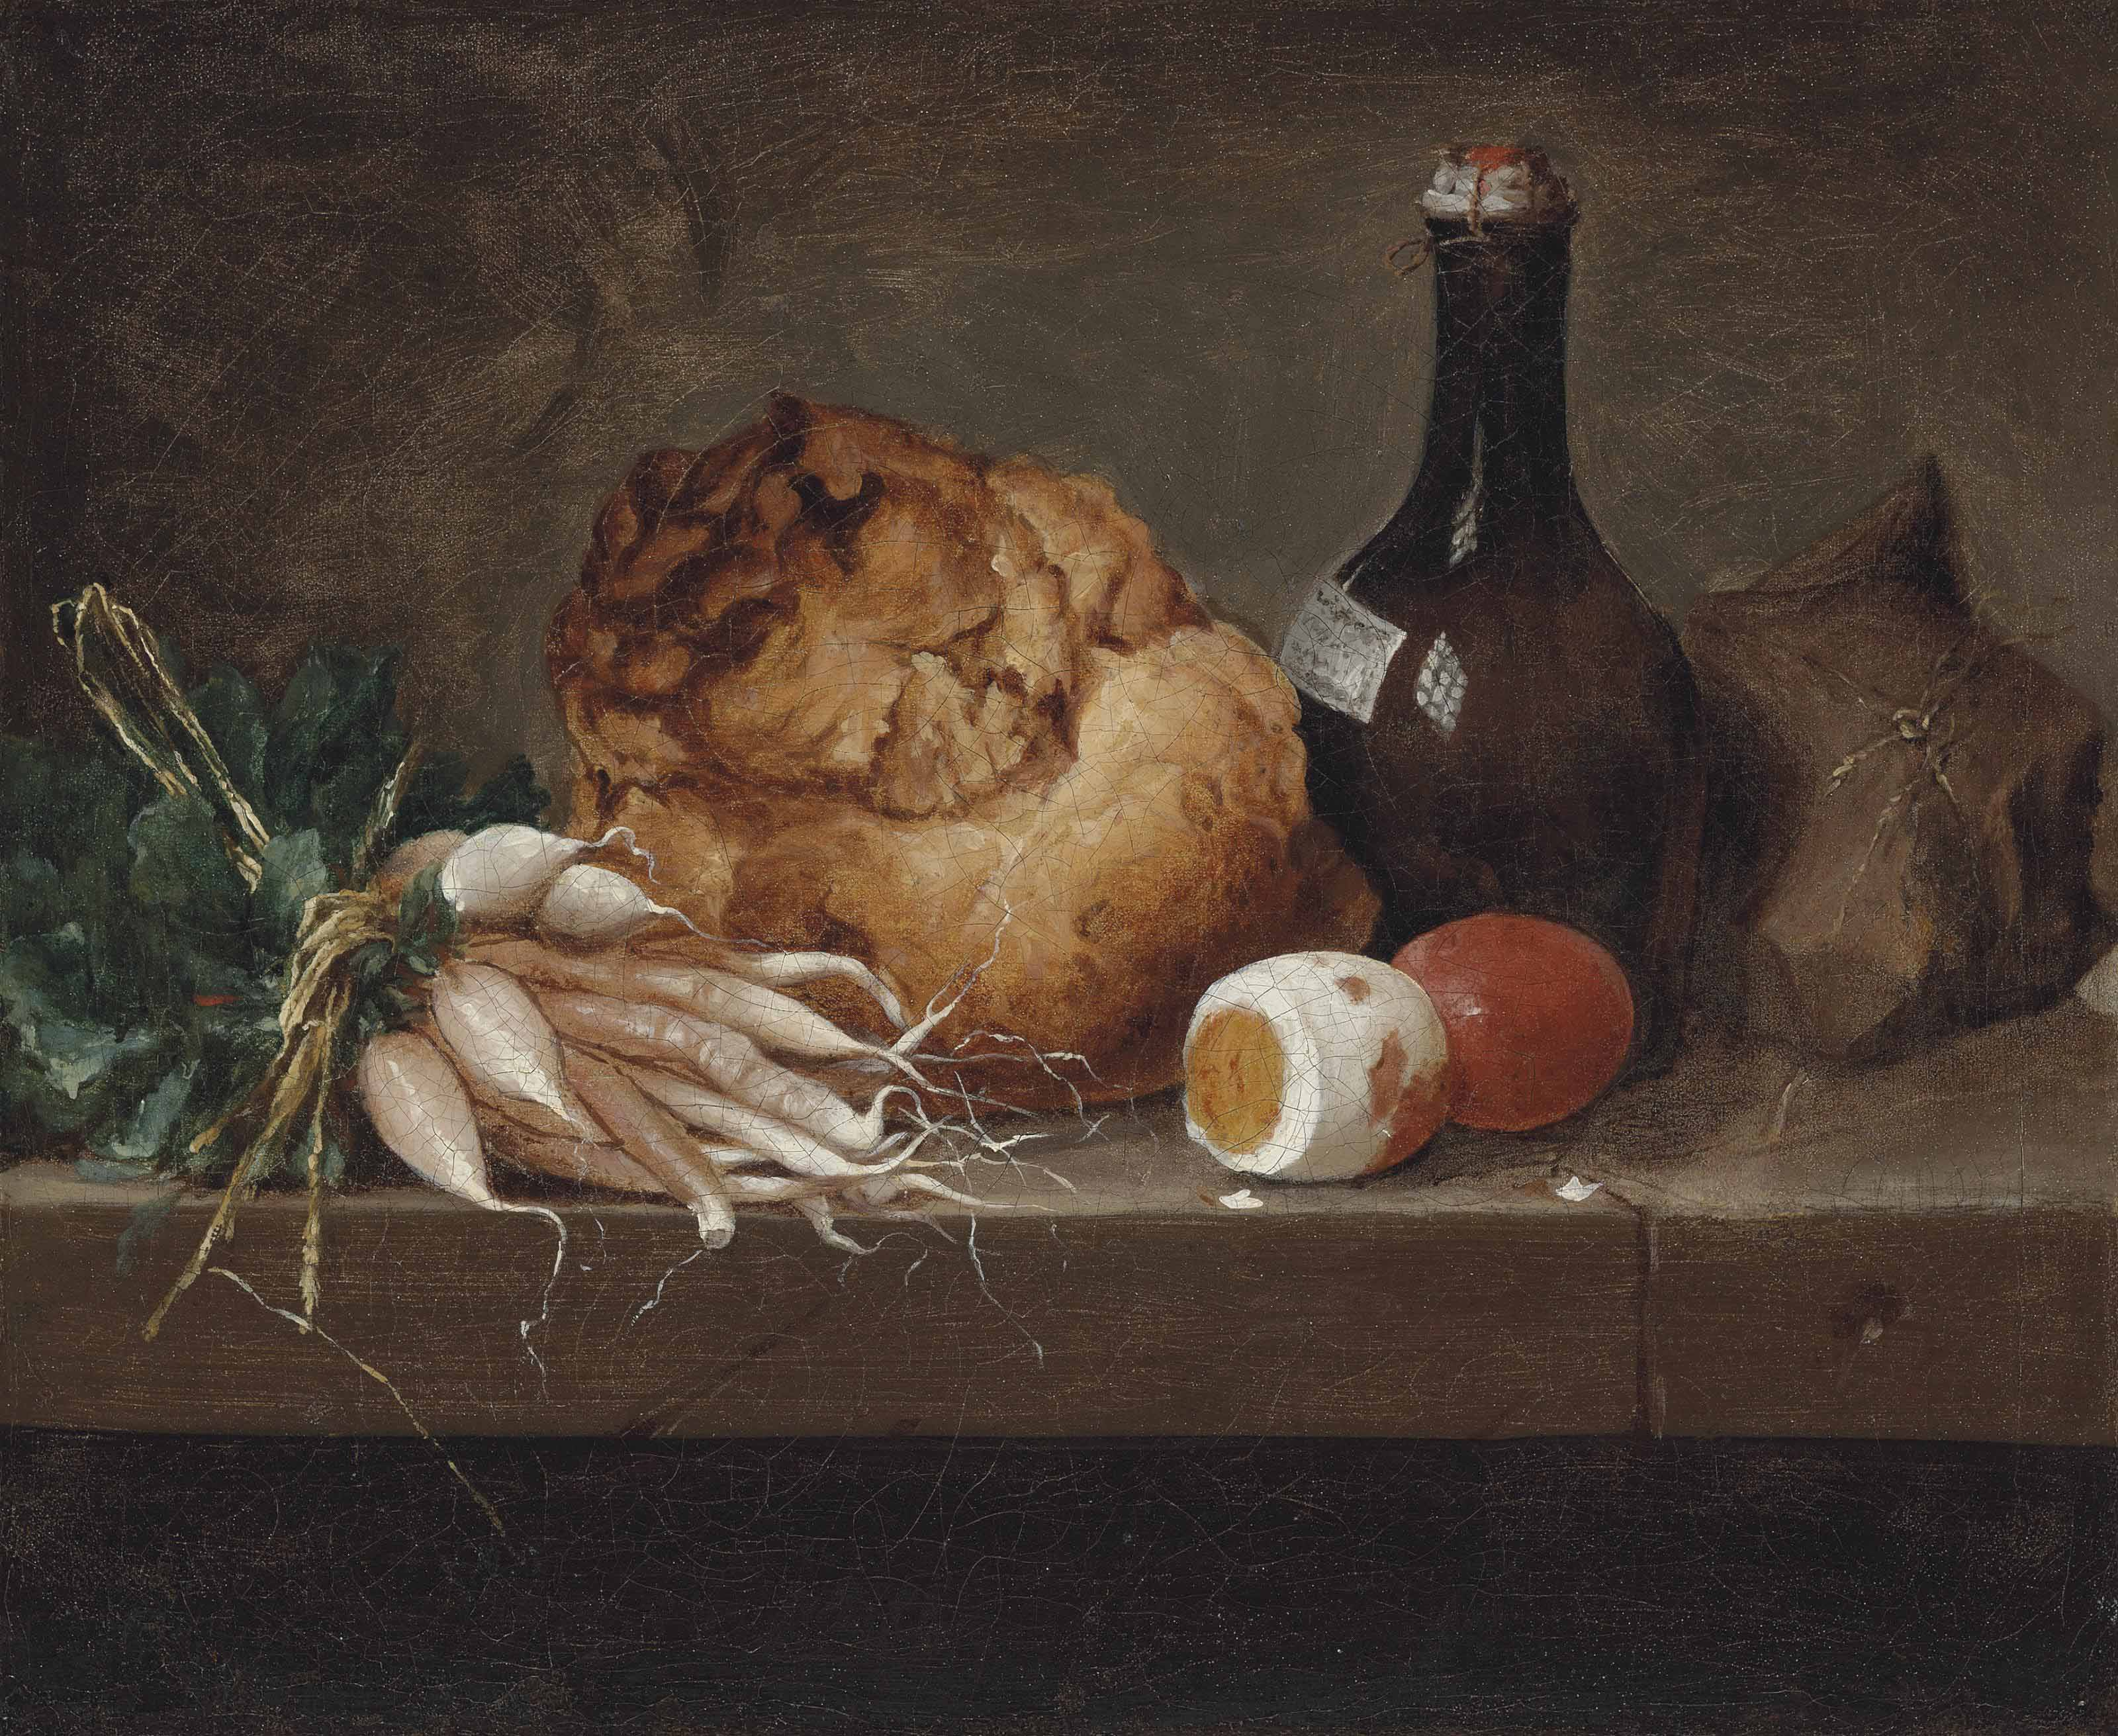 https://www.christies.com/img/LotImages/2014/CSK/2014_CSK_05660_0064_000(anne_vallayer-coster_parsnips_a_loaf_of_bread_eggs_and_a_bottle_on_a_s).jpg